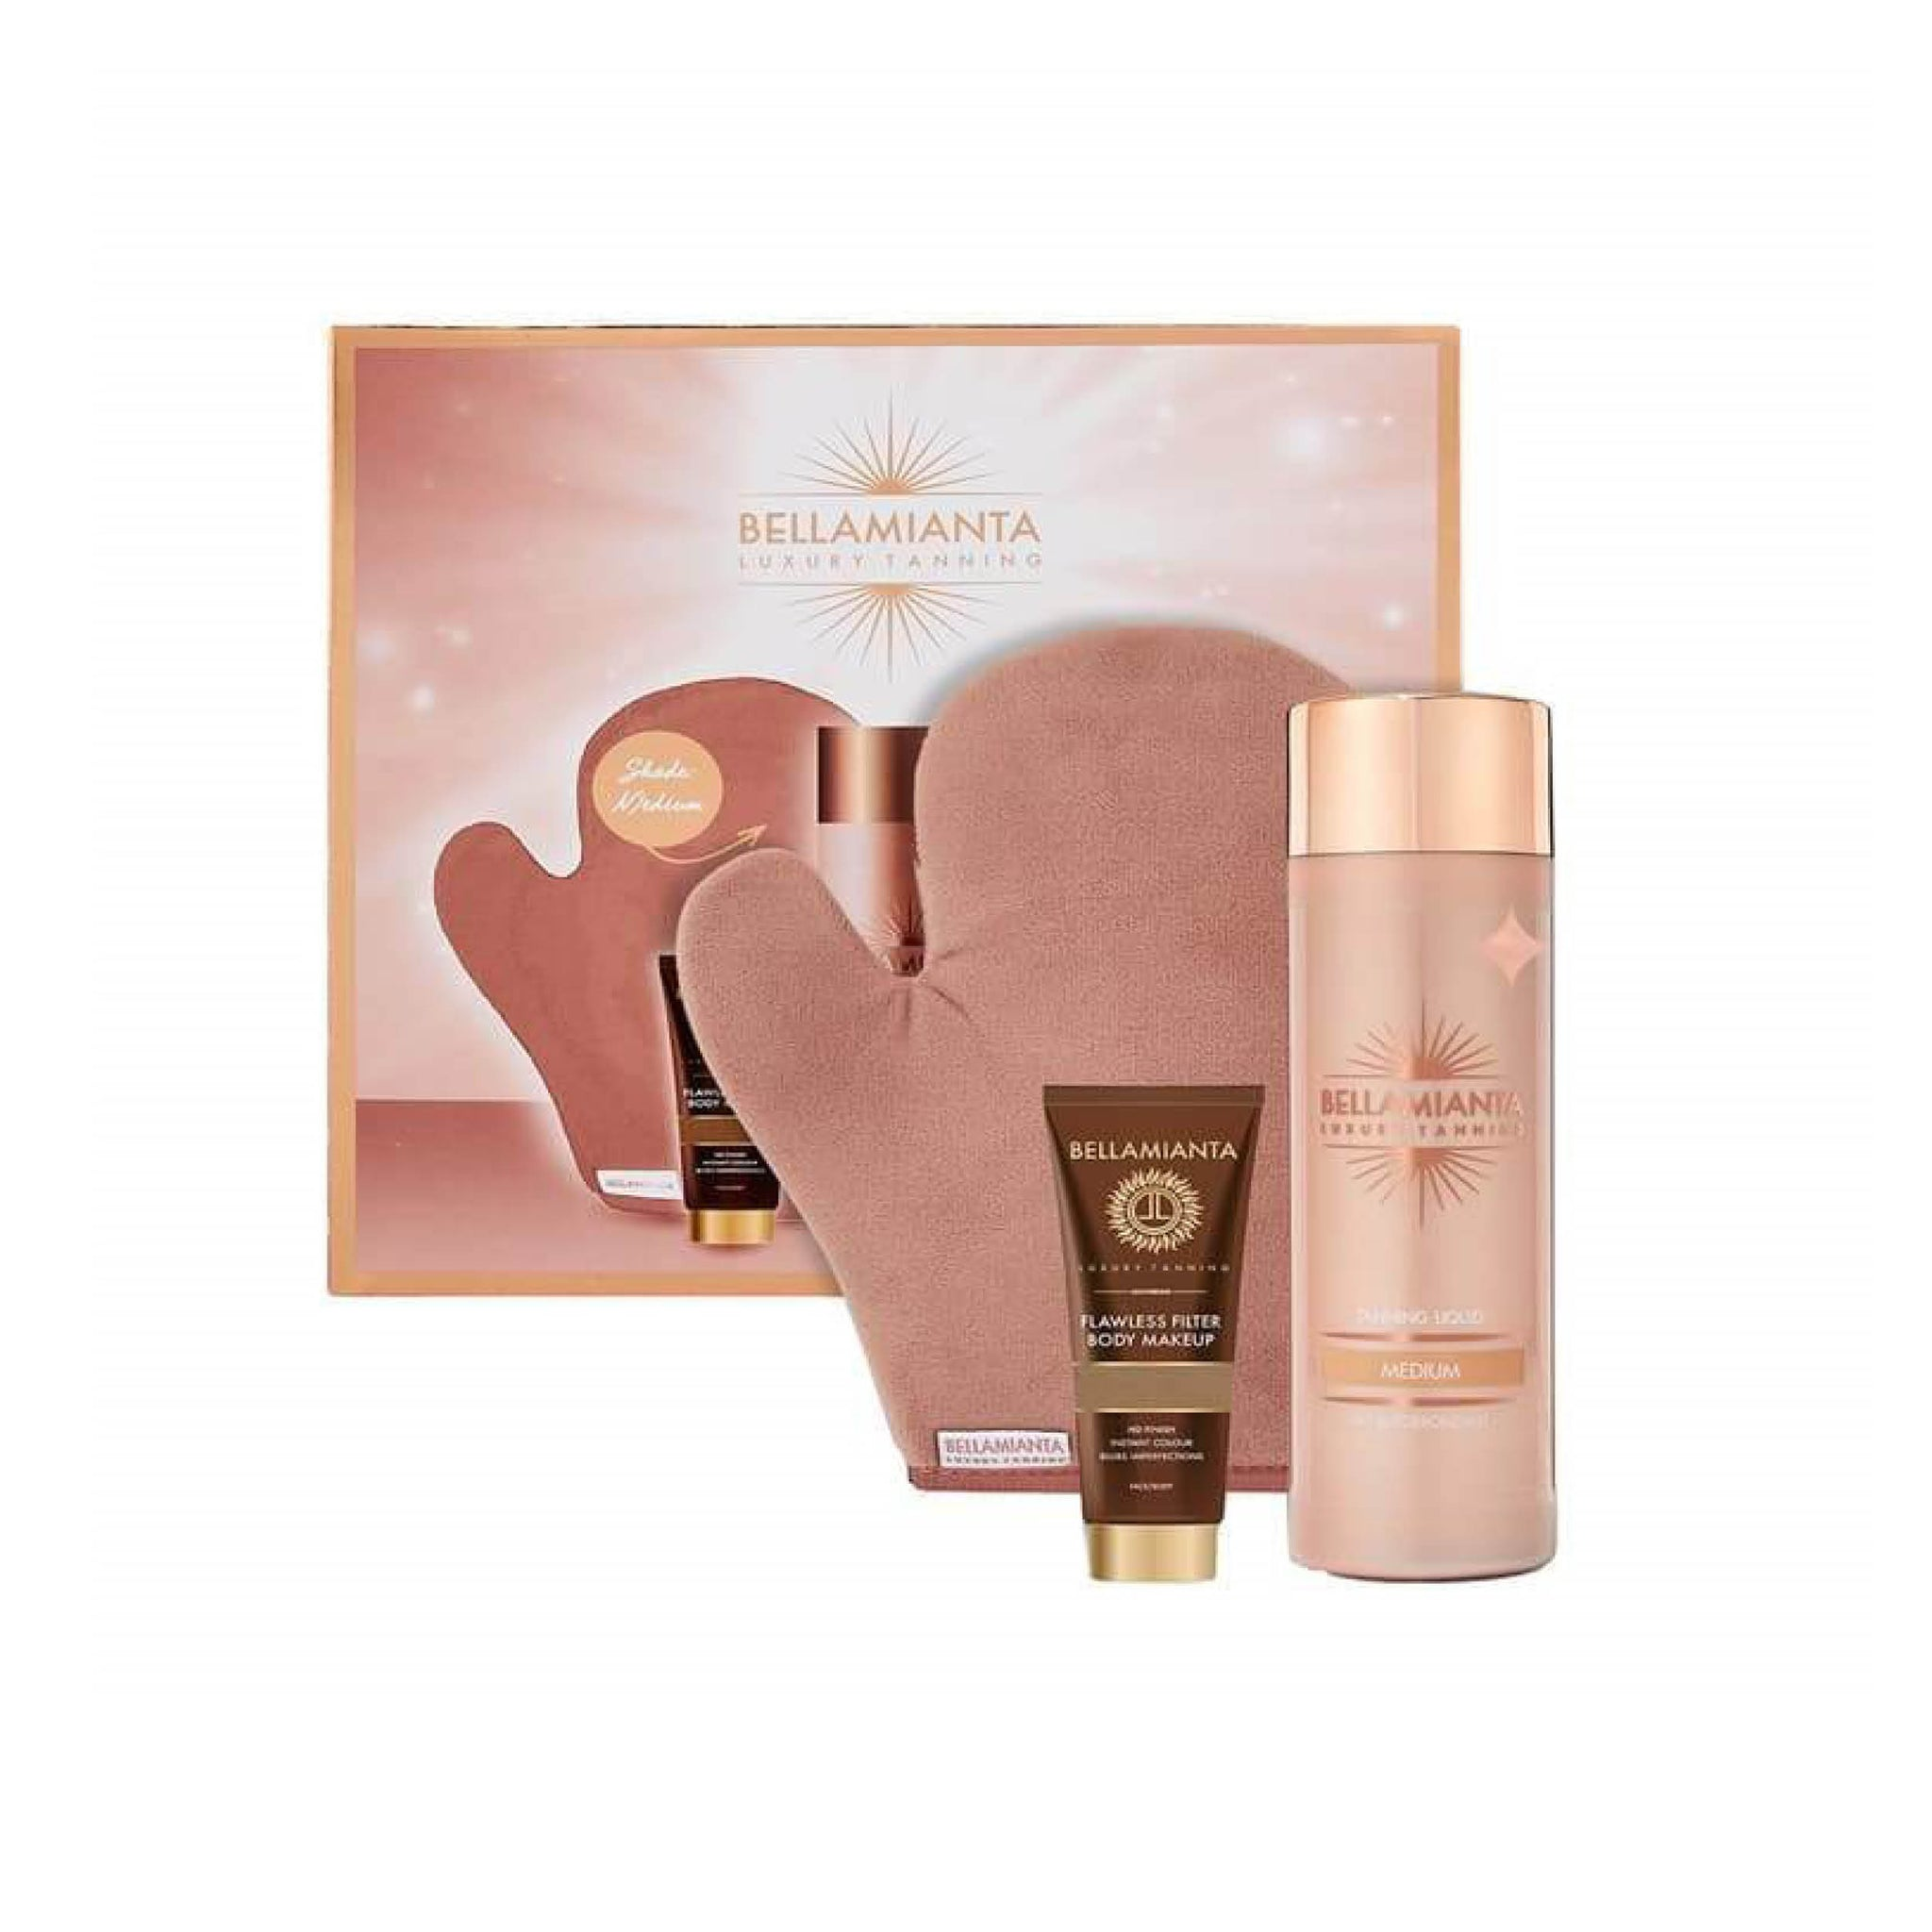 Bellamianta Luxury Tanning Liquid Gold Lovers Medium Gift Set